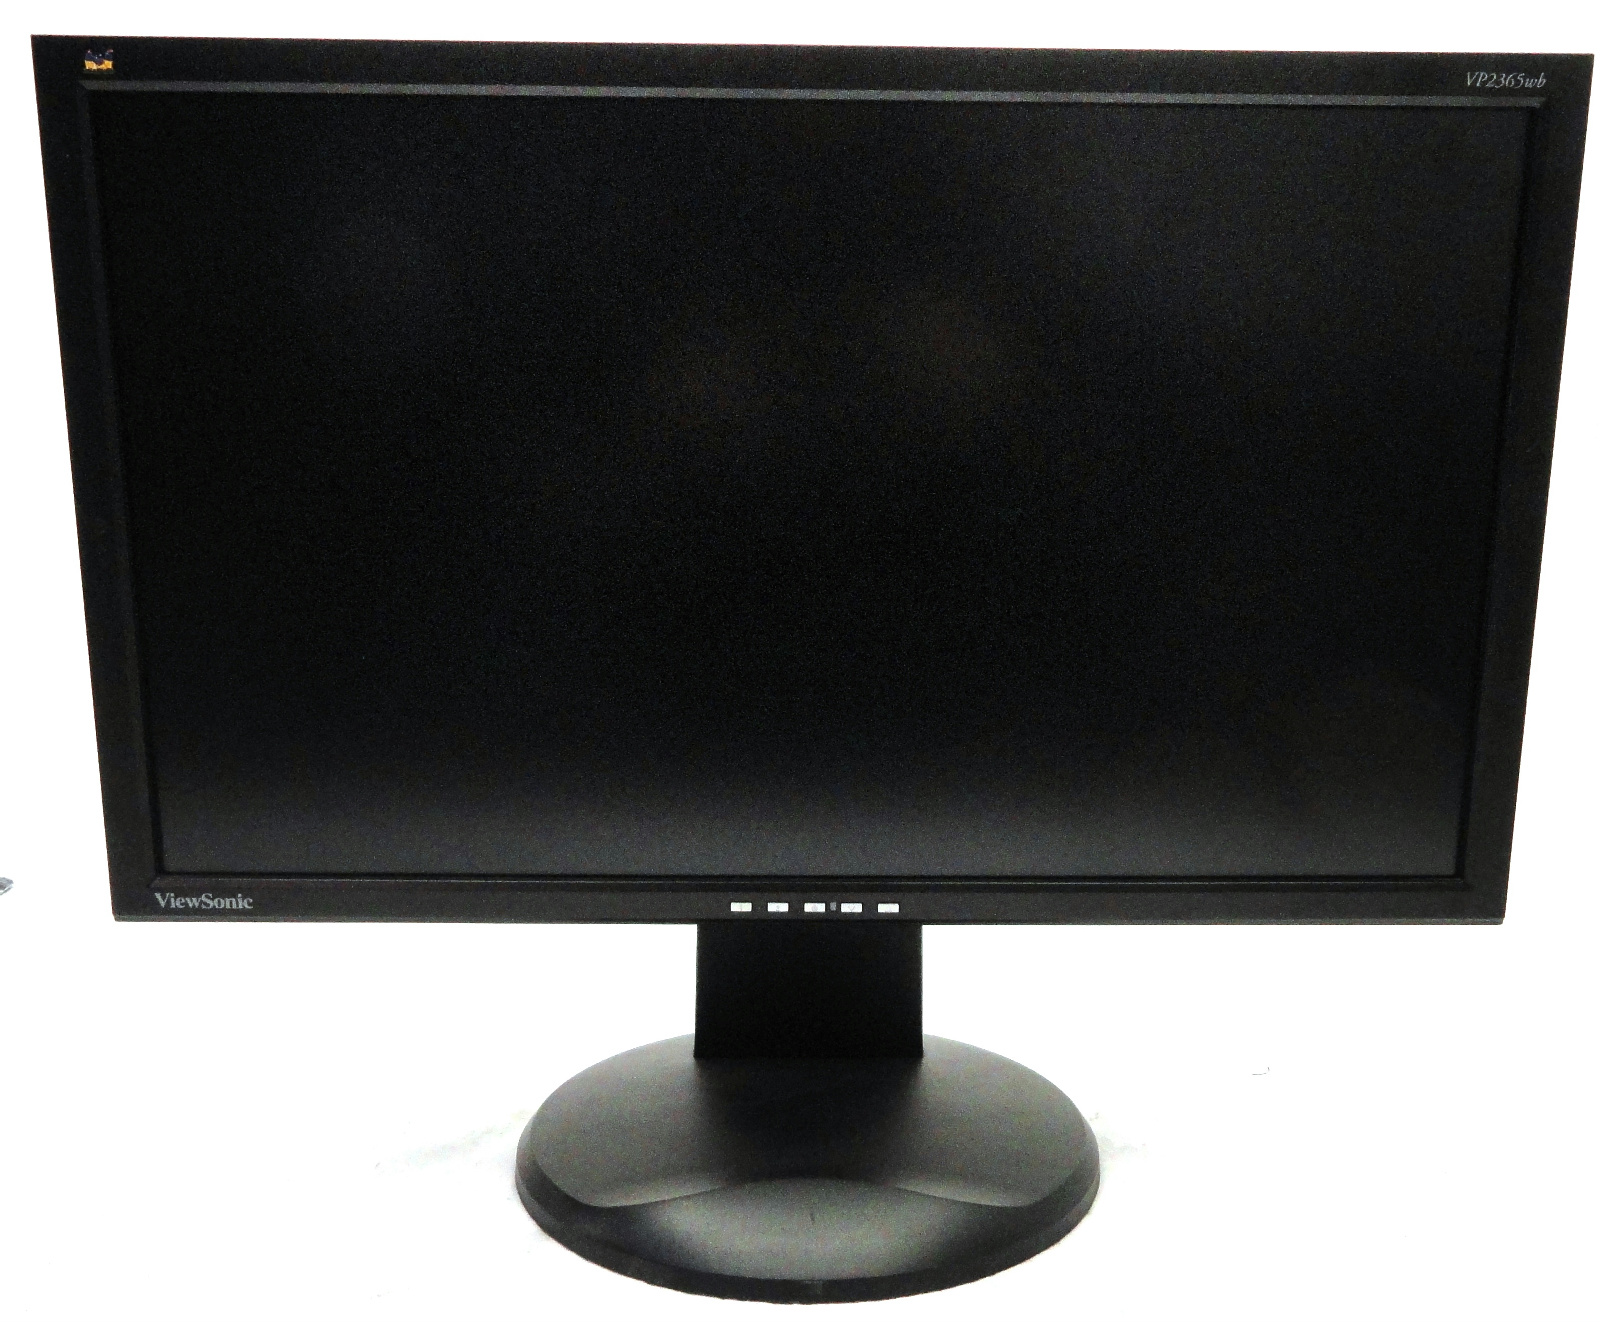 how to change aspect ratio on a 16 9 monitor